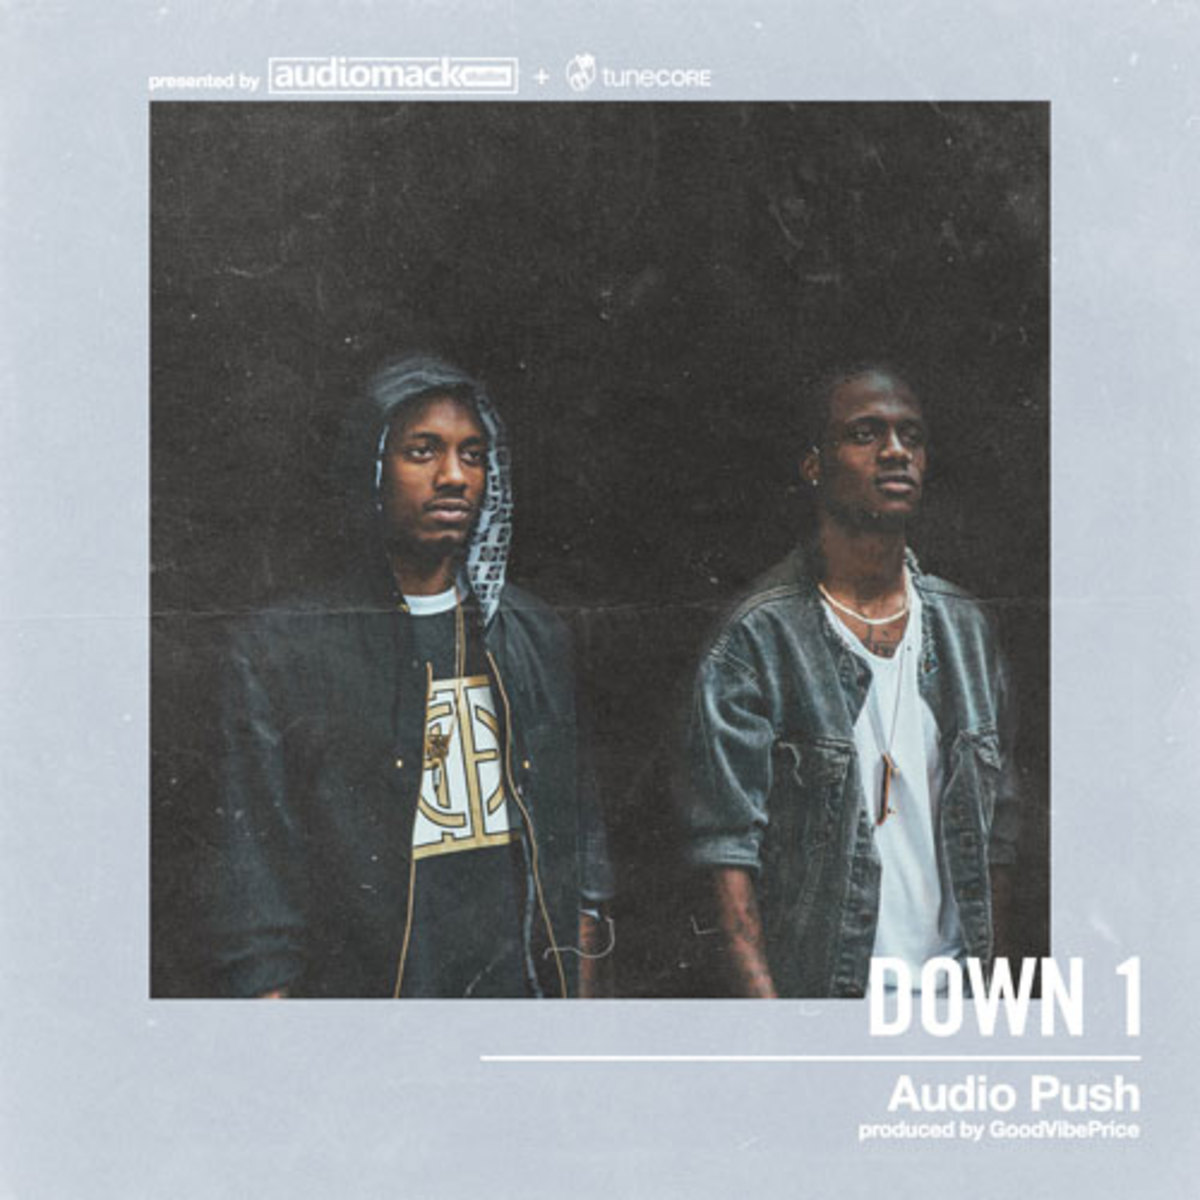 audio-push-down-1-freestyle-art.jpg